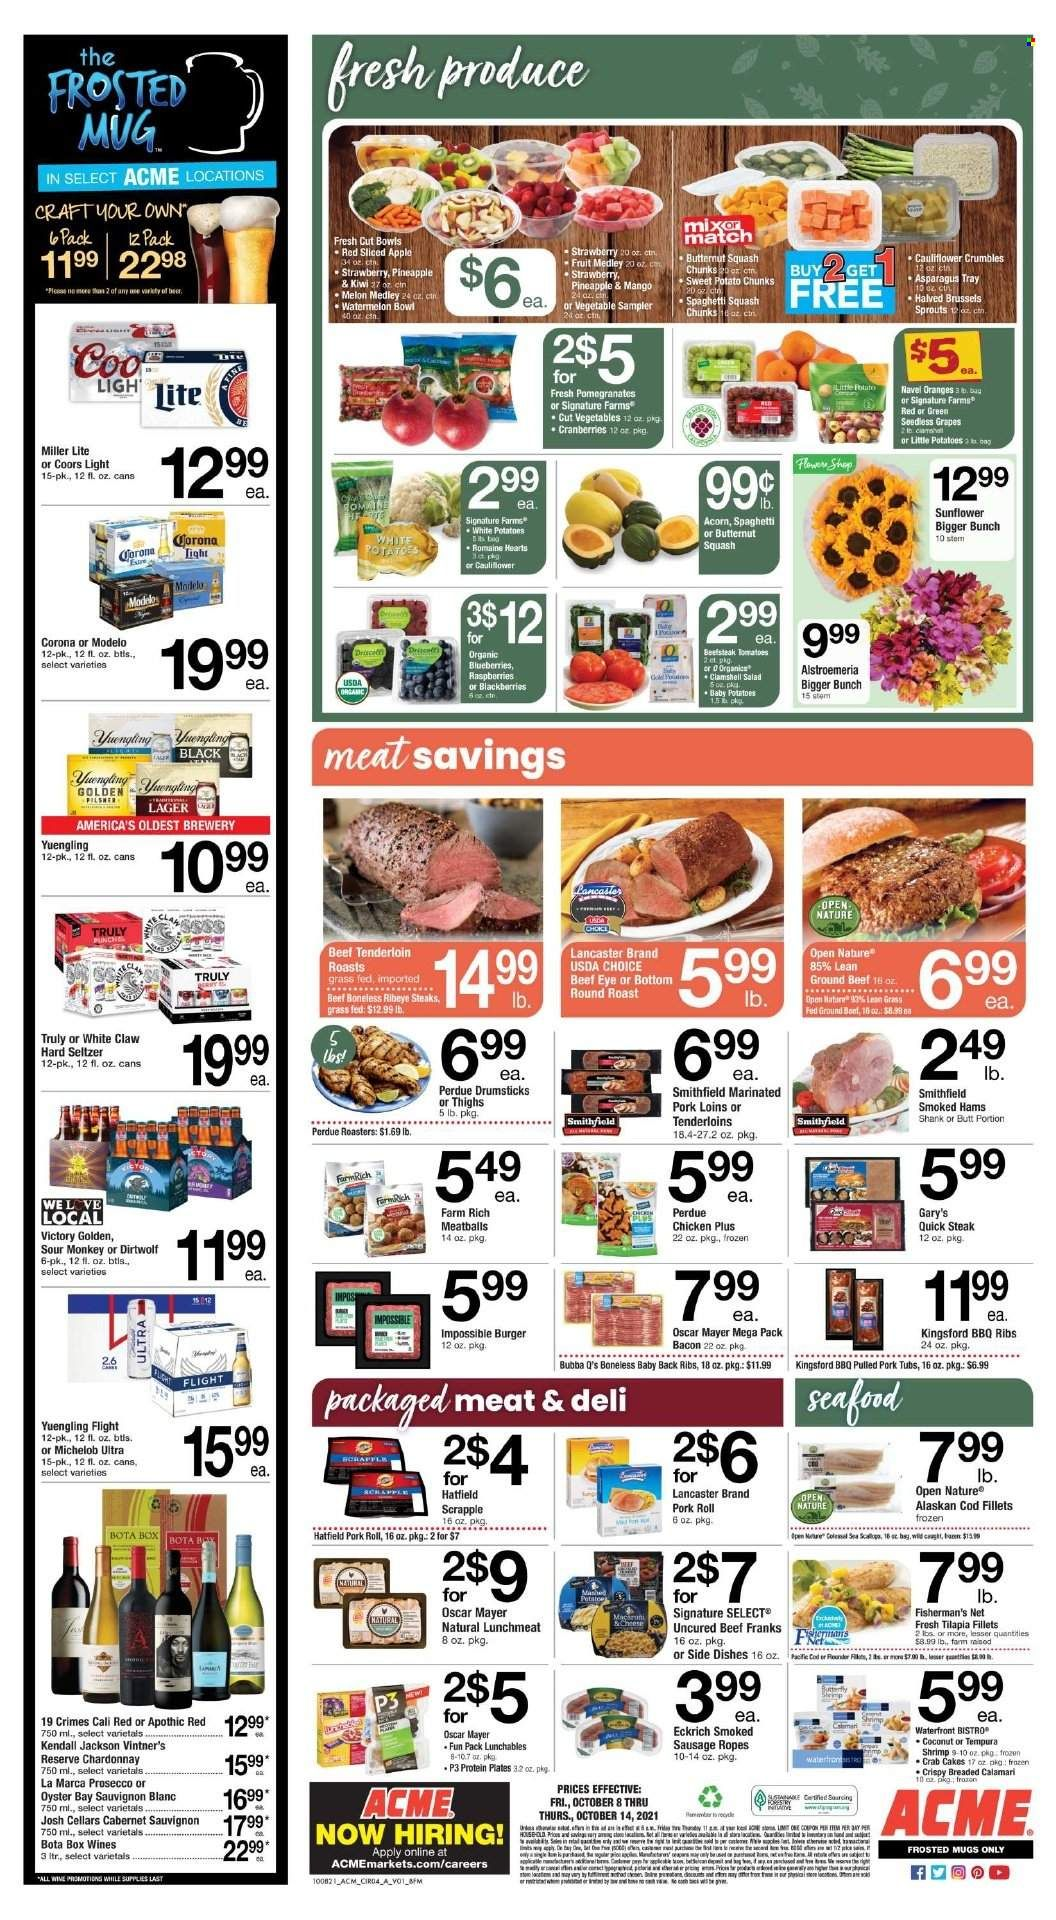 ACME Markets Ad from october 13 to 20 2021 - Page 4